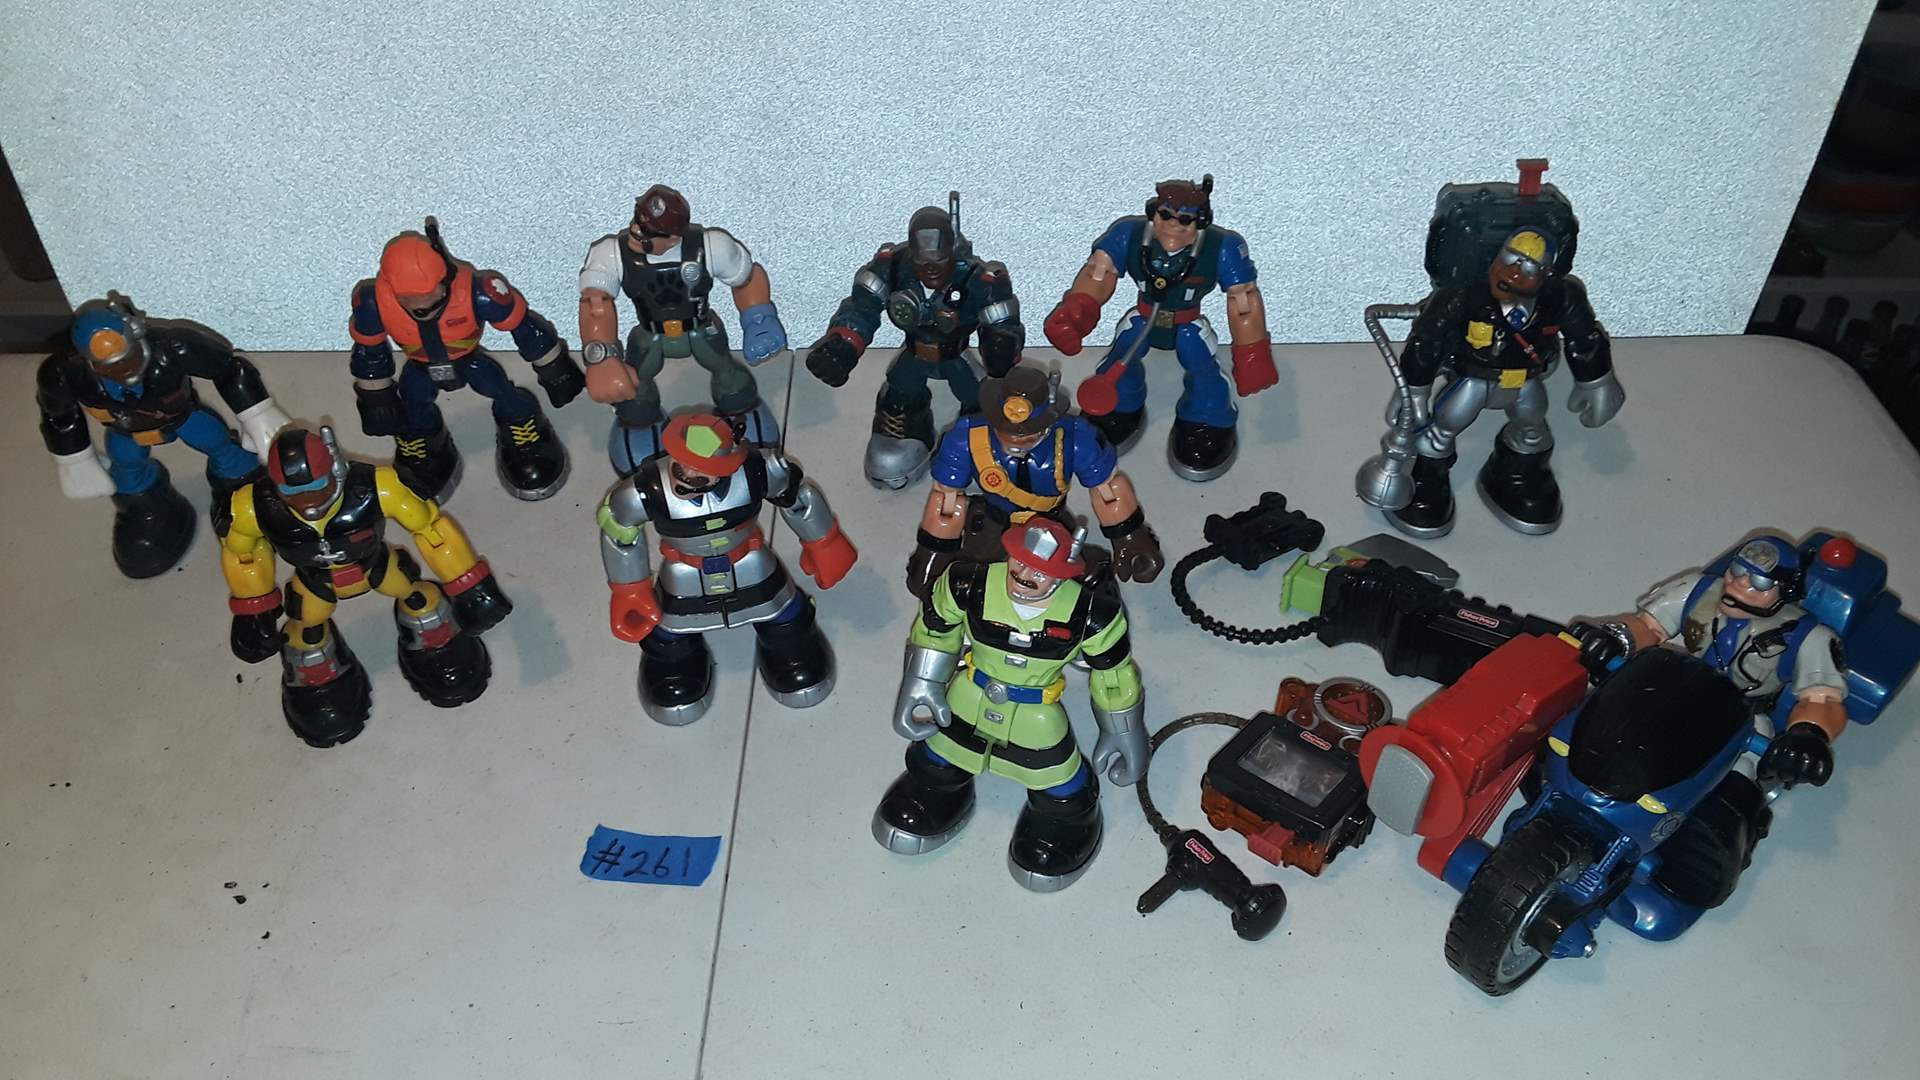 Lot # 261 MATTEL 2001 FIRST RESPONDERS ACTION FIGURES, GOOD CONDITION